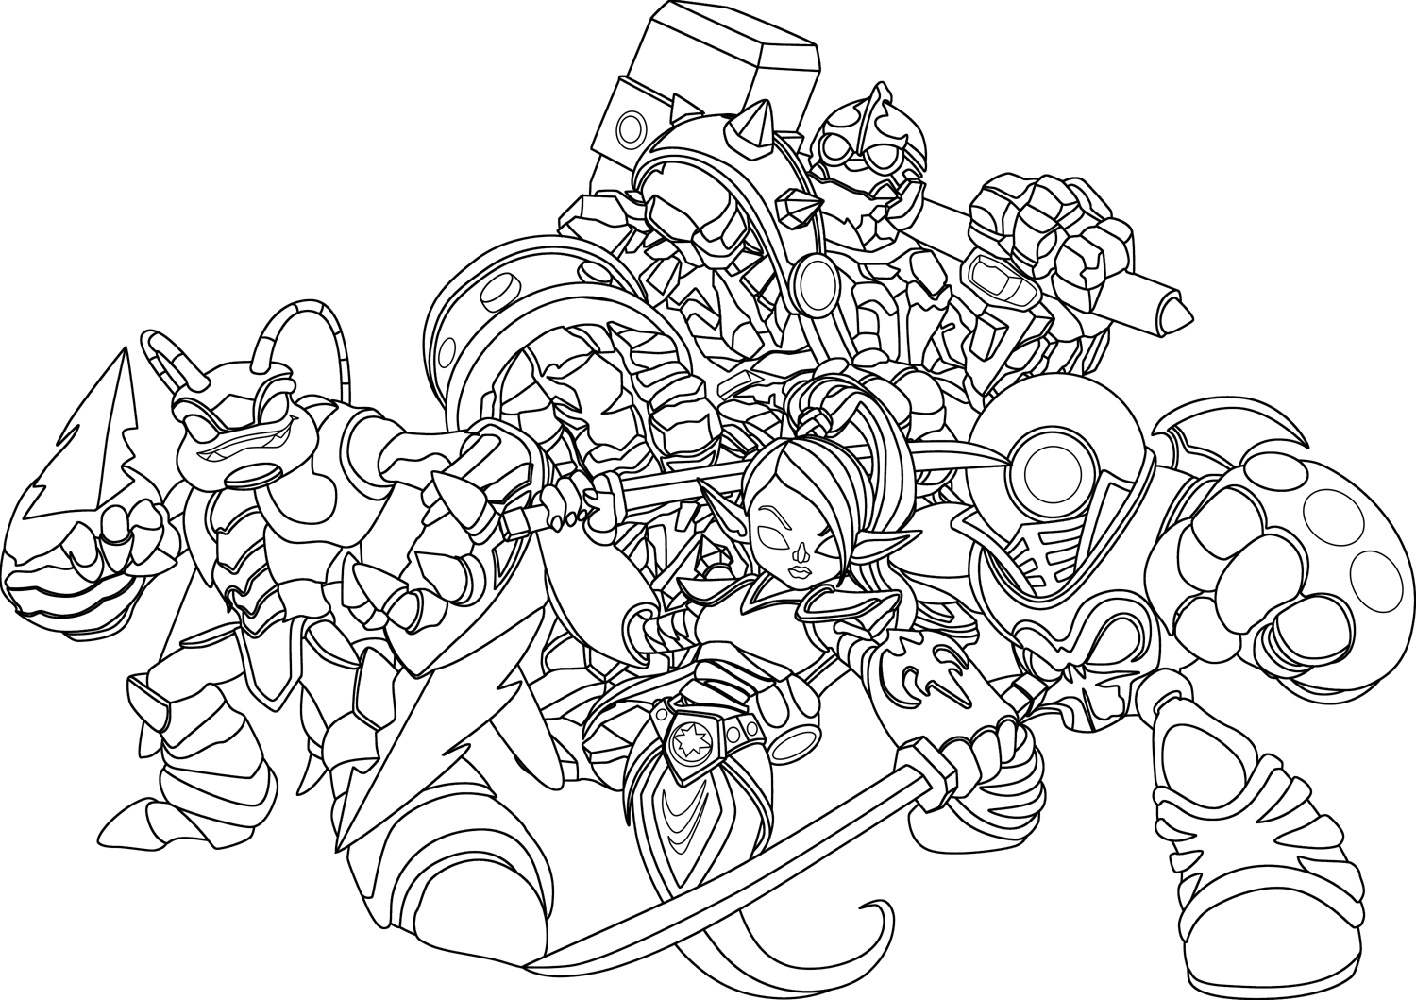 Skylanders Imaginators Coloring Pages Characters